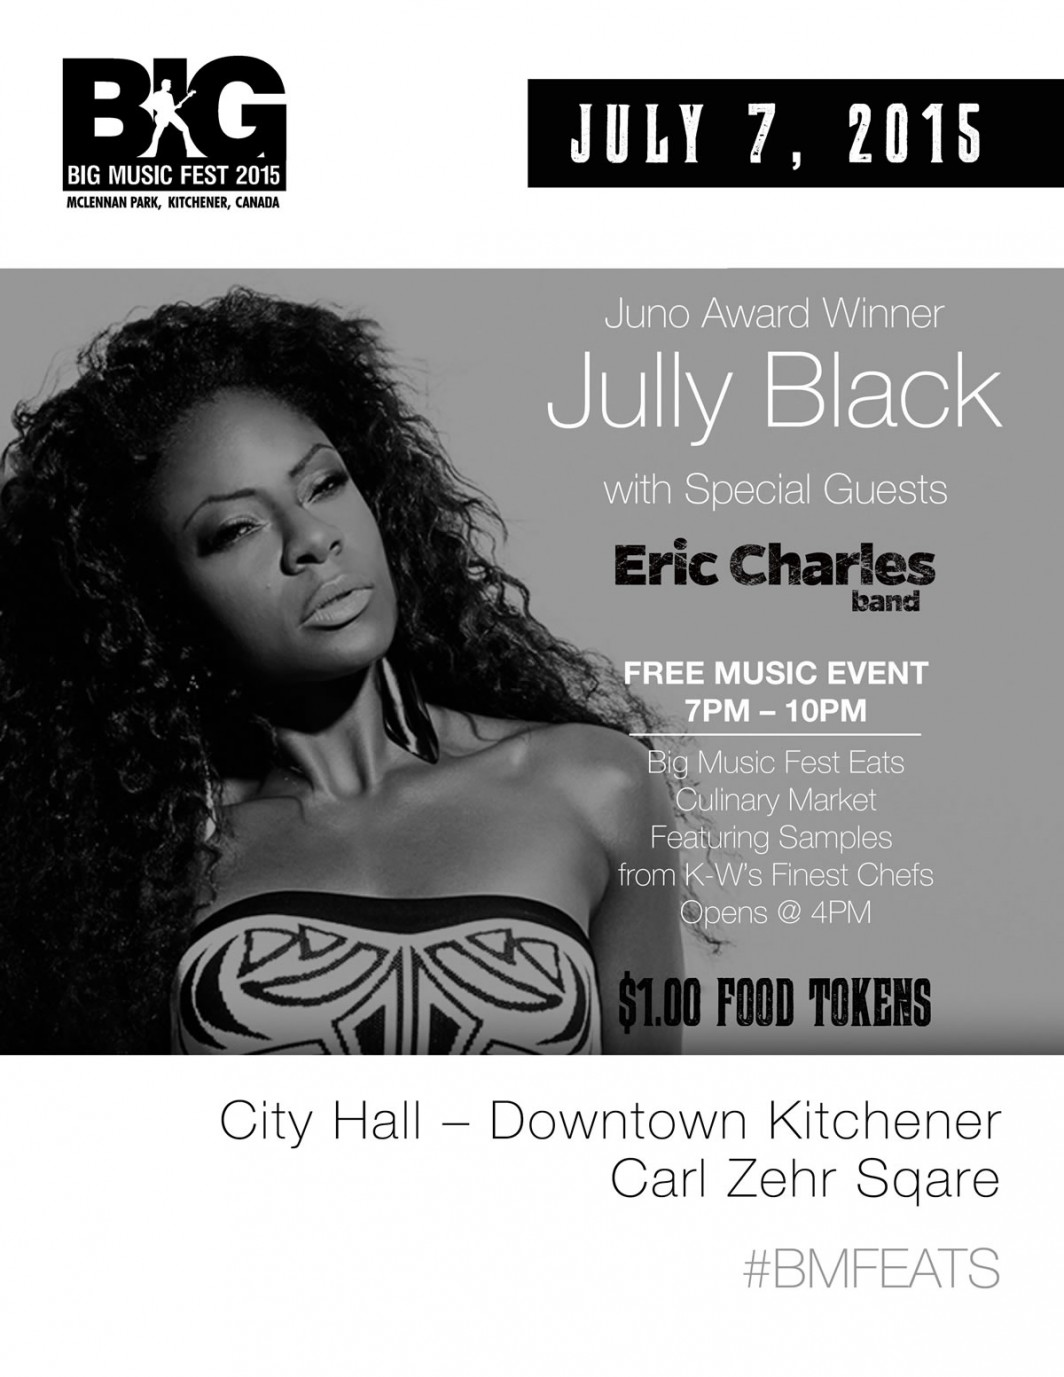 Eric Charles Band Live in Downtown Kitchener